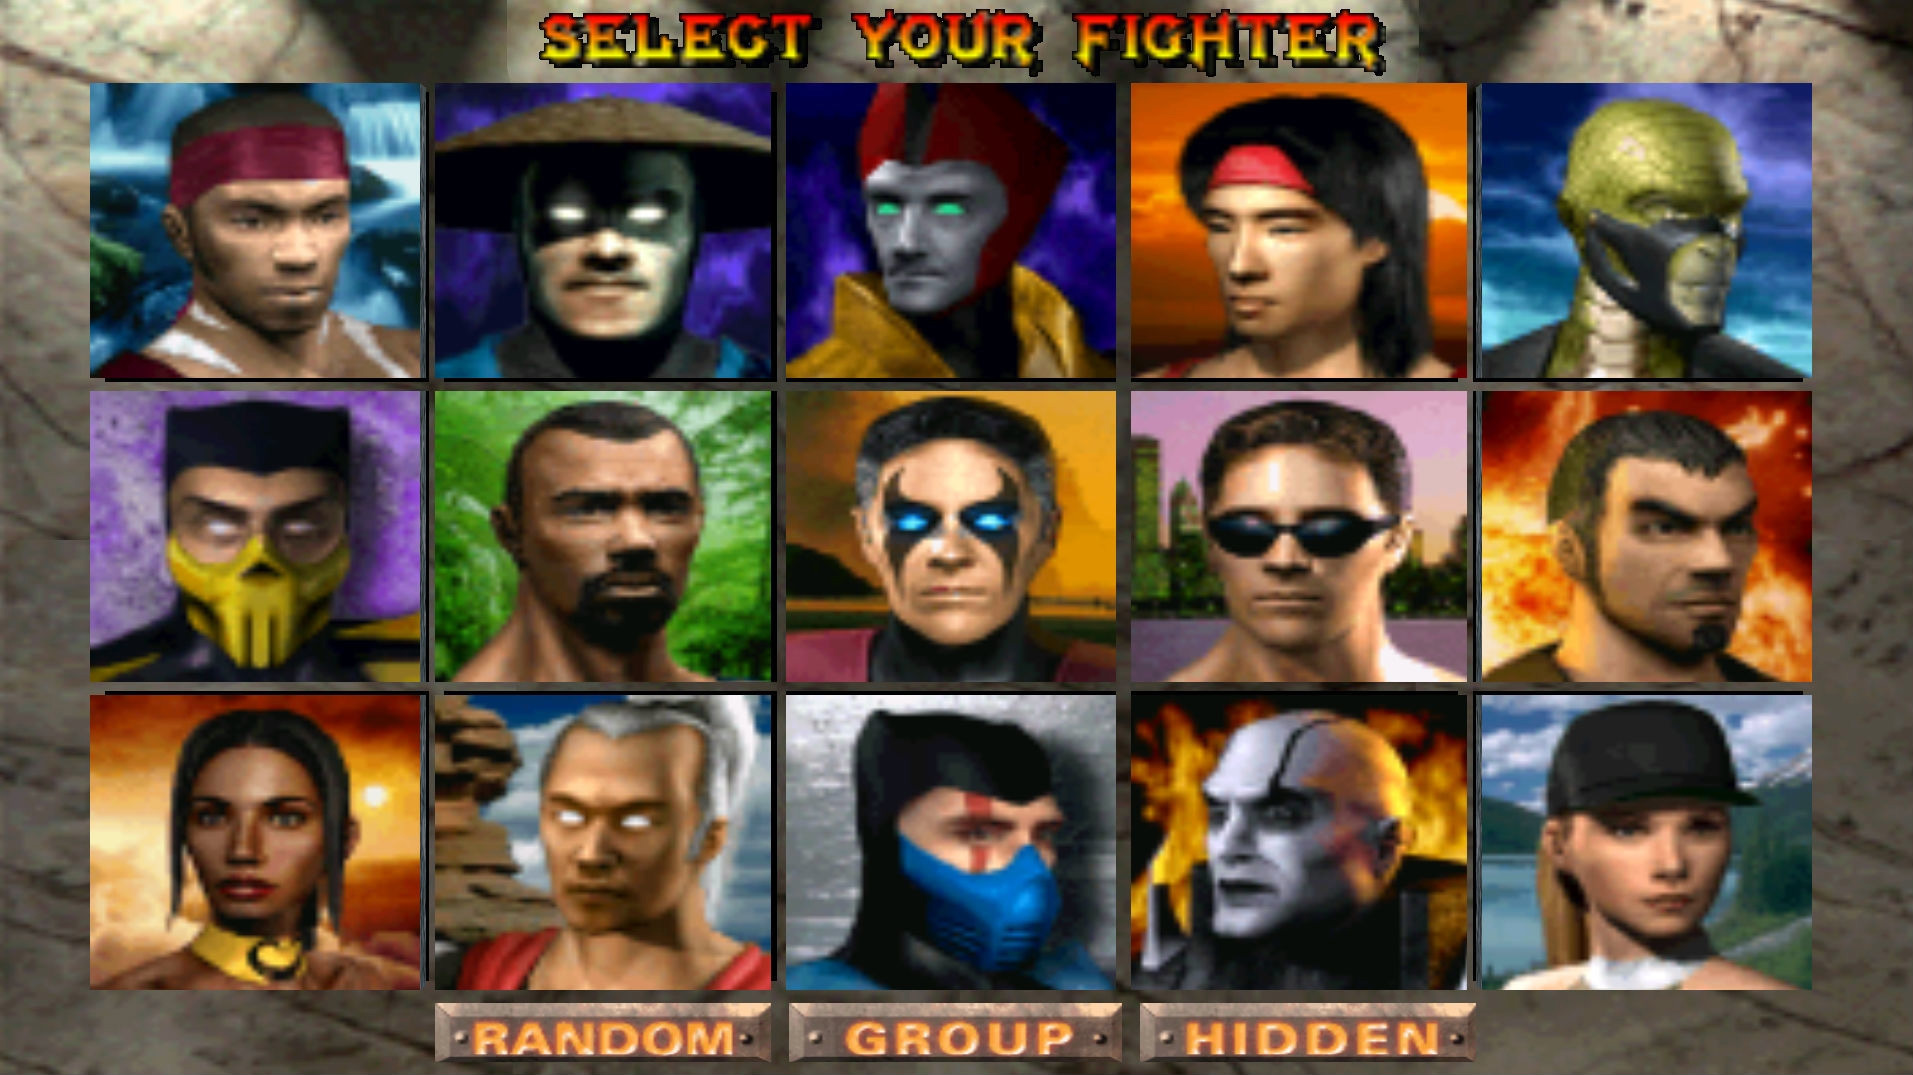 GOG released Mortal Kombat 4 on PC out of nowhere screenshot